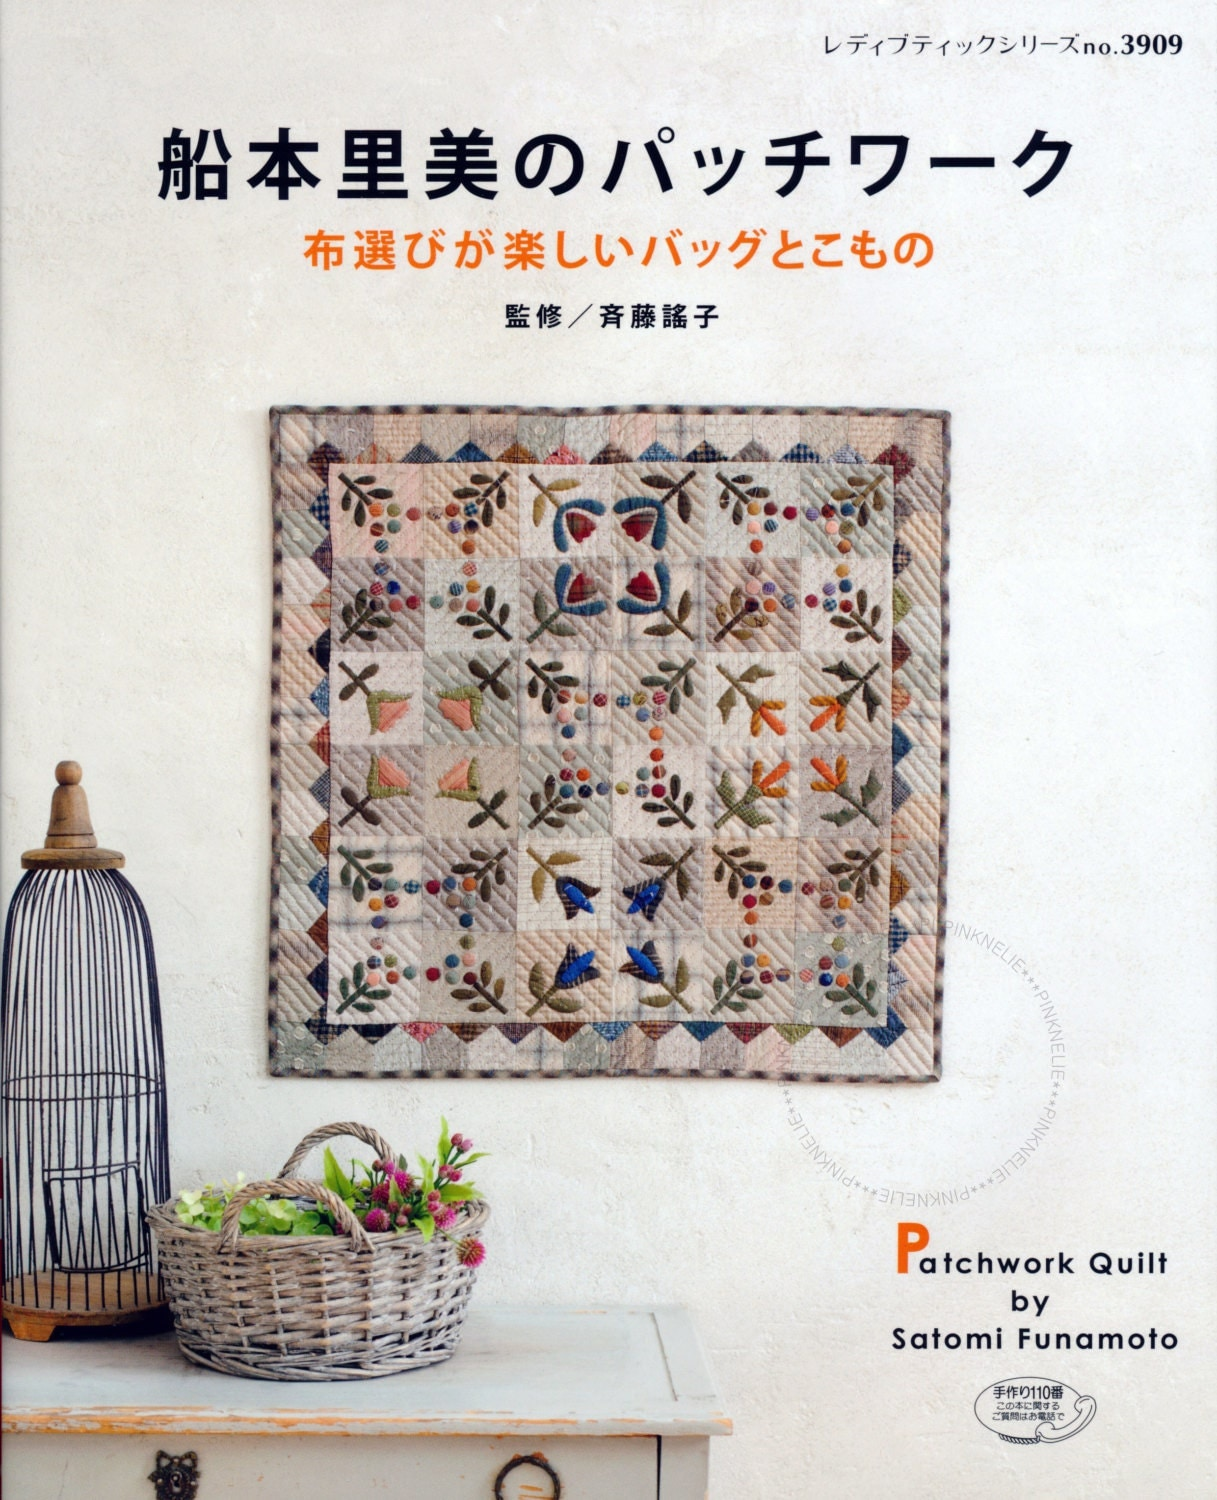 Funamoto satomi patchwork quilt n3909 japanese craft book for Patchwork quilt book